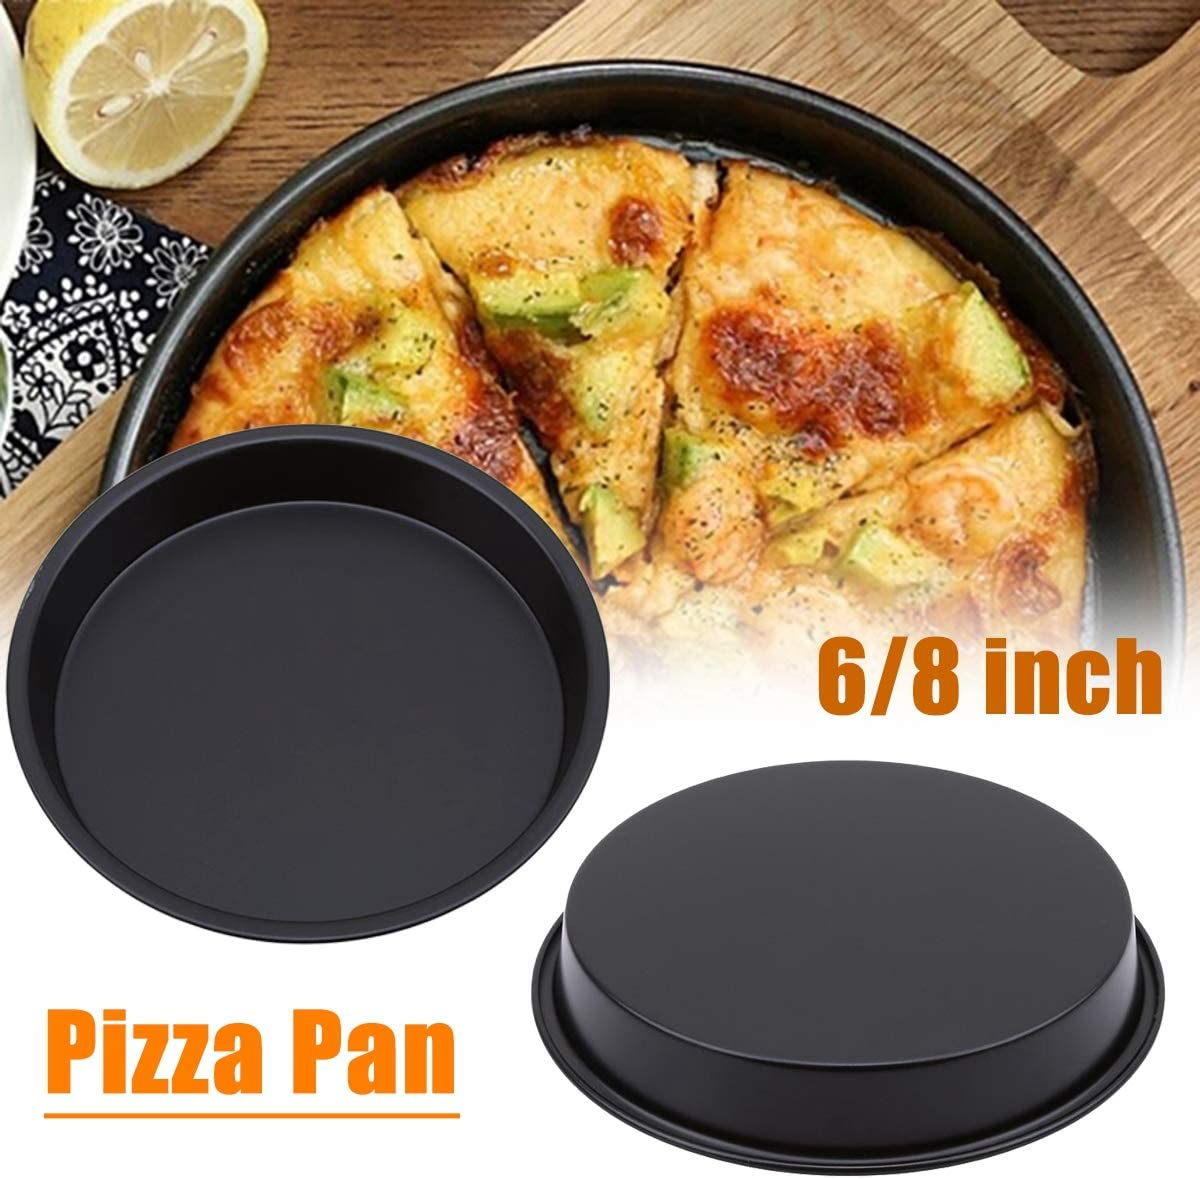 1PC Bakeware Pizza Pan,Stainless Steel Round Pizza Pan Tray Carbon Steel Non-Stick Oven Pizza Plate Pan for Kitchen Bakeware Cooking Tool,8 inch